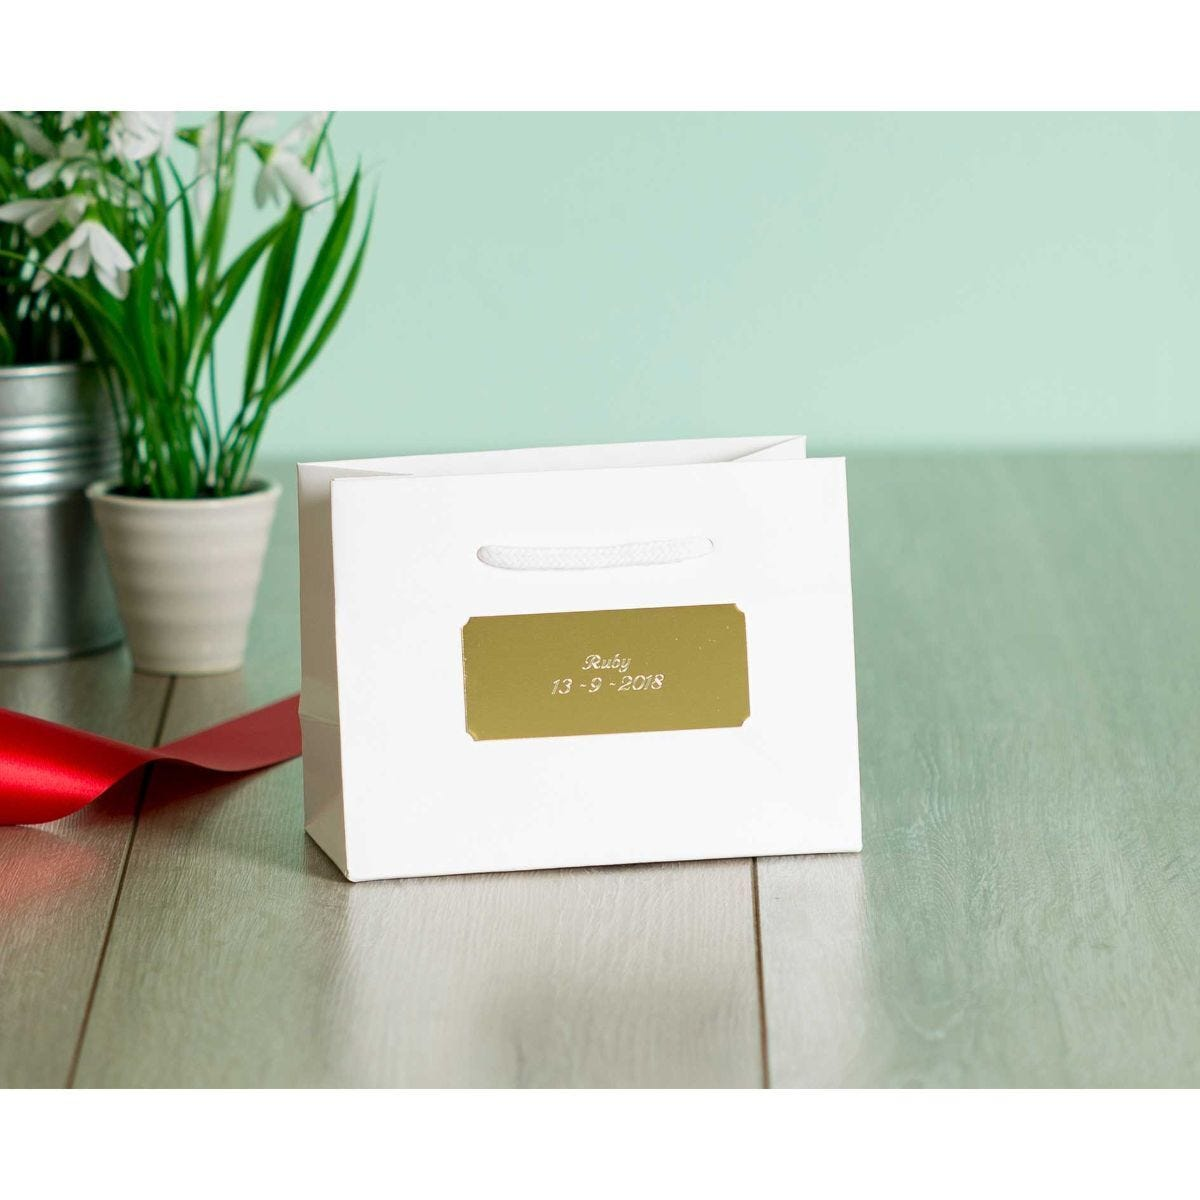 Personalised Luxury Small White Gift Bag with Engraved Gold Plate